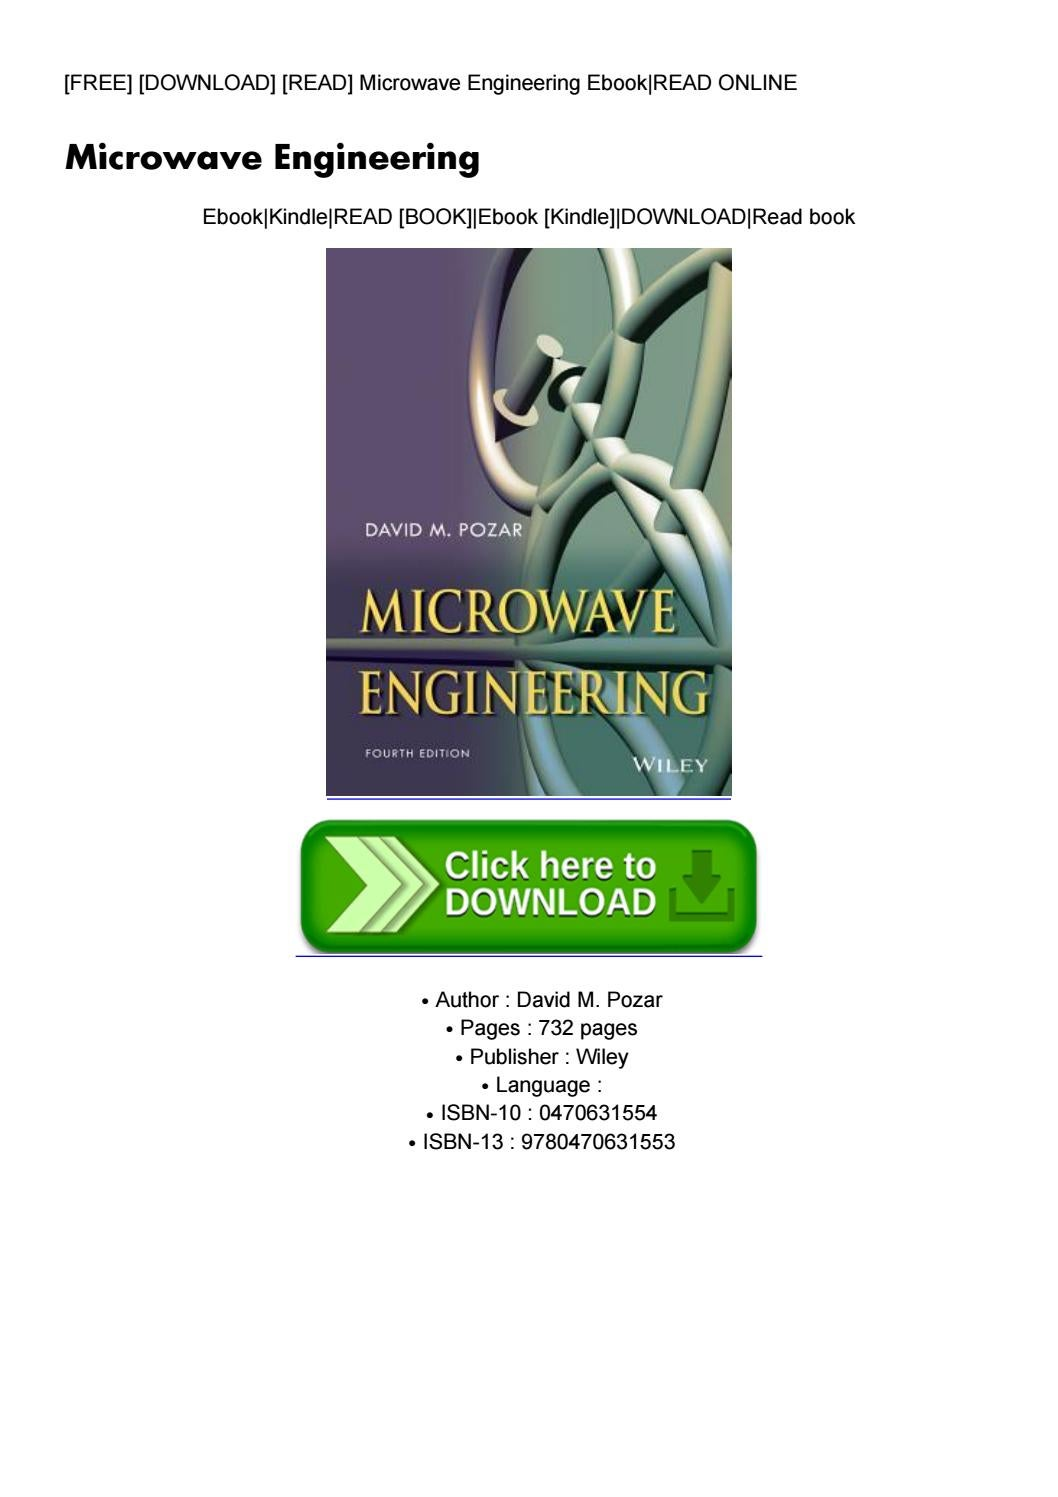 Download in [pdf] microwave engineering by david m. Pozar (paperback).